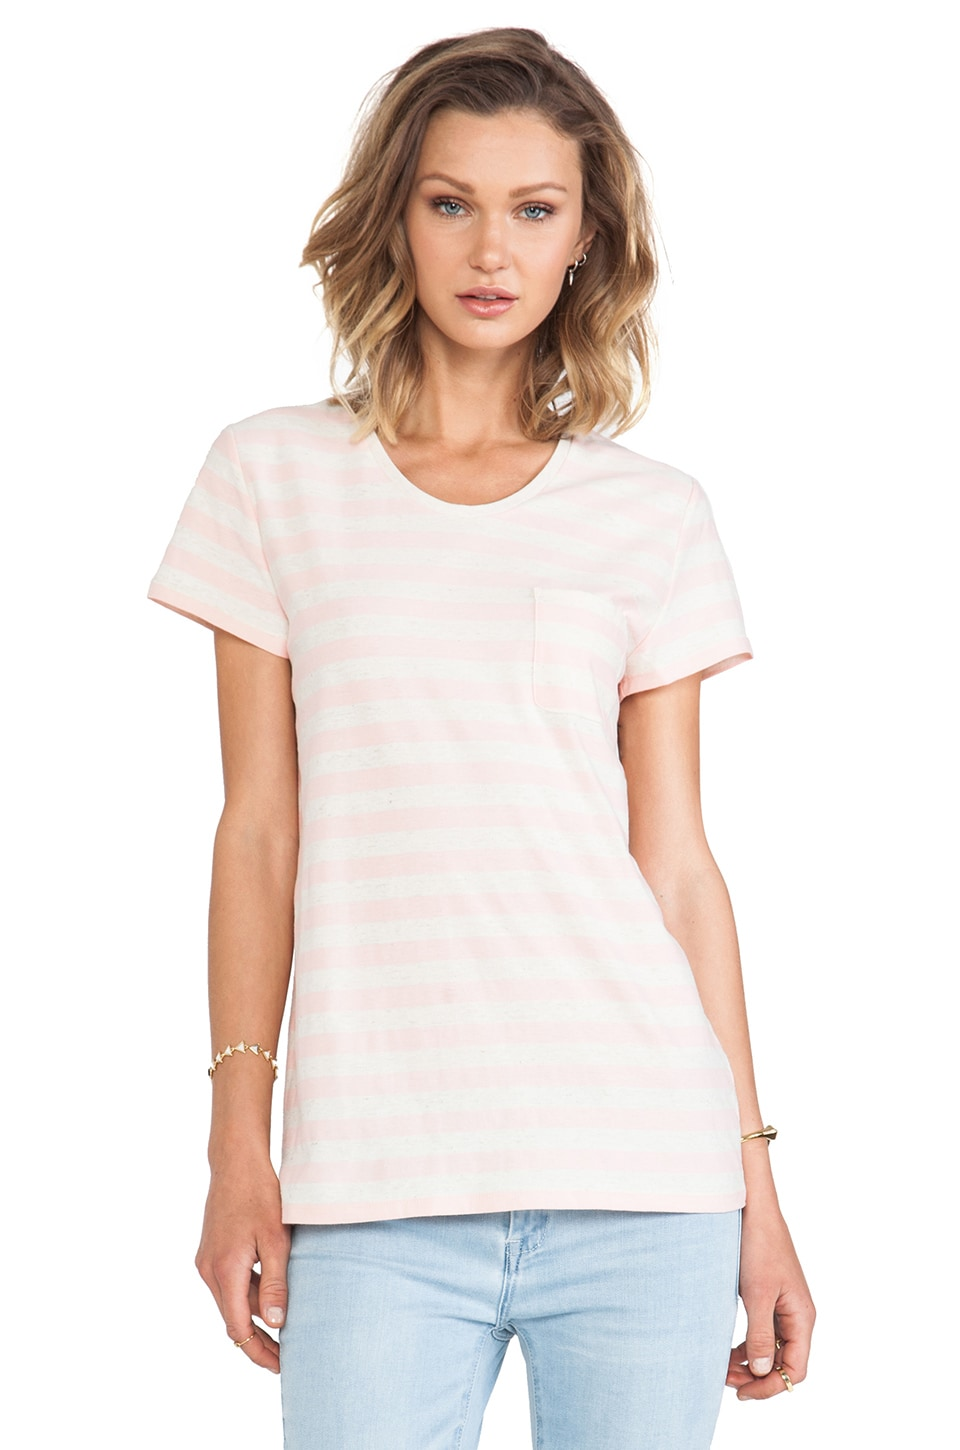 Marc by Marc Jacobs Pam Stripe Tee in Adobe Pink Multi